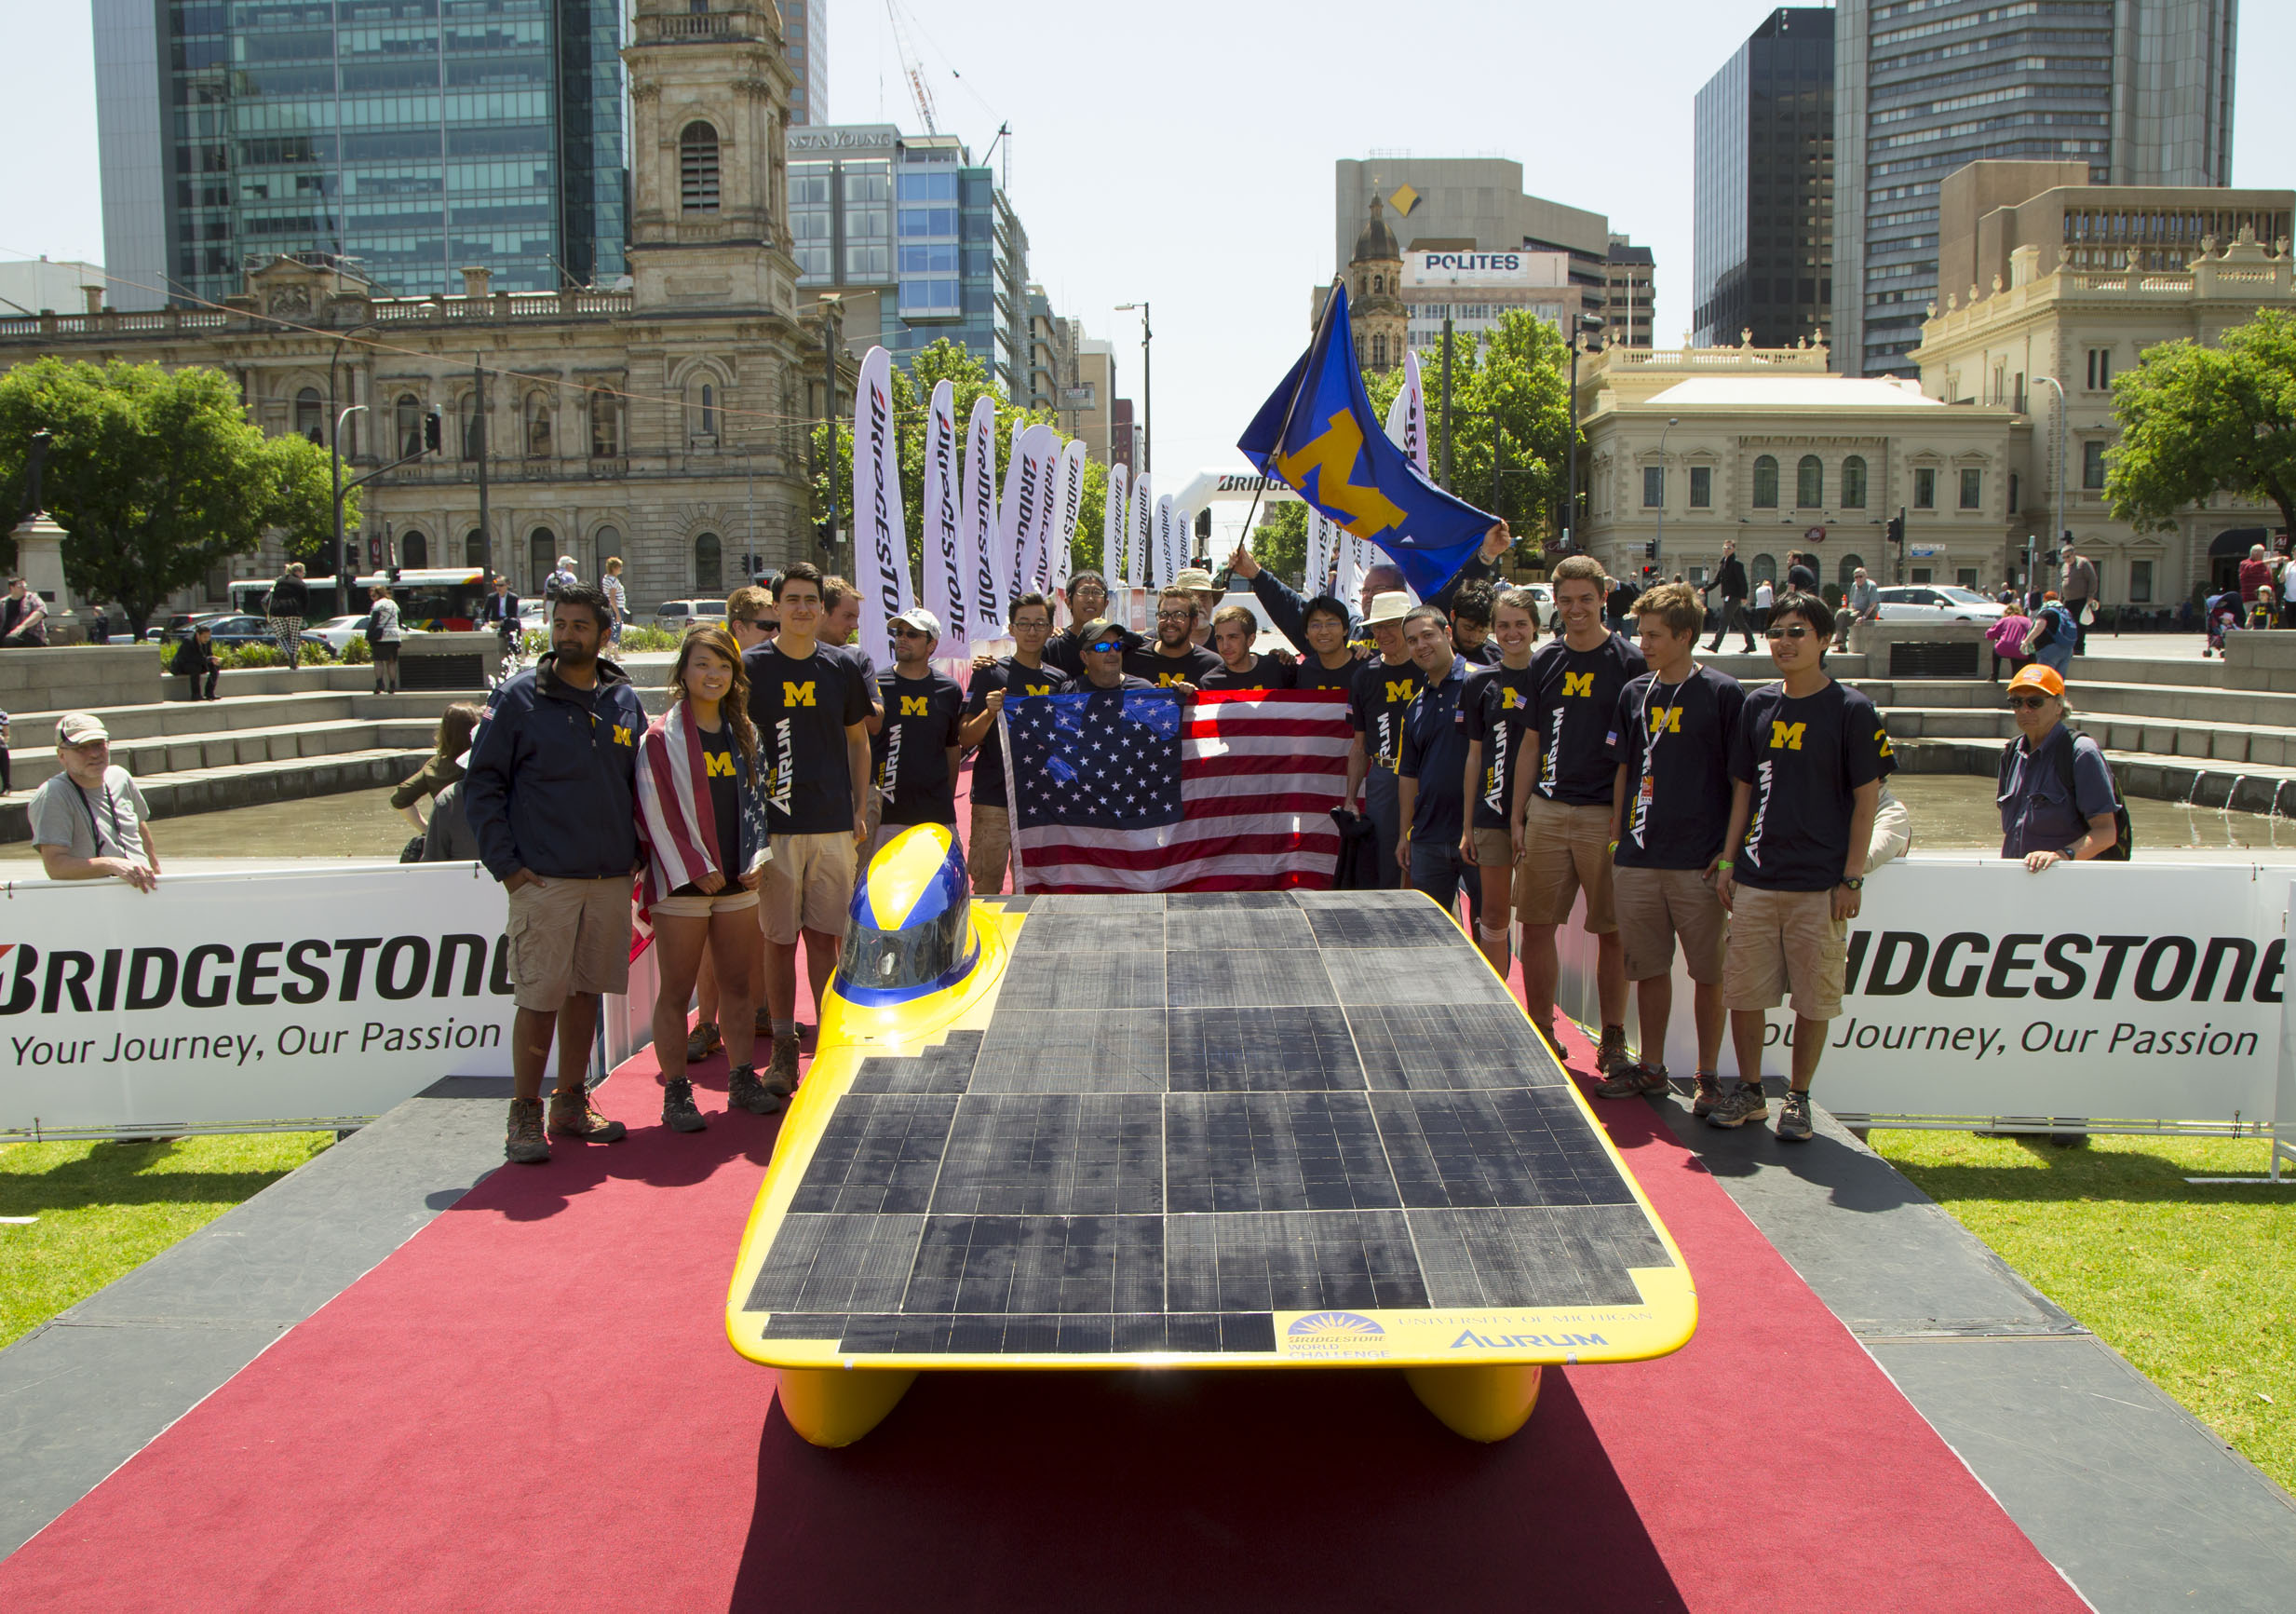 The U-M Solar Car Team finishes fourth in the 2015 Bridgestone World Solar Challenge. Image credit: Evan Dougherty, Michigan Engineering Communications & Marketing